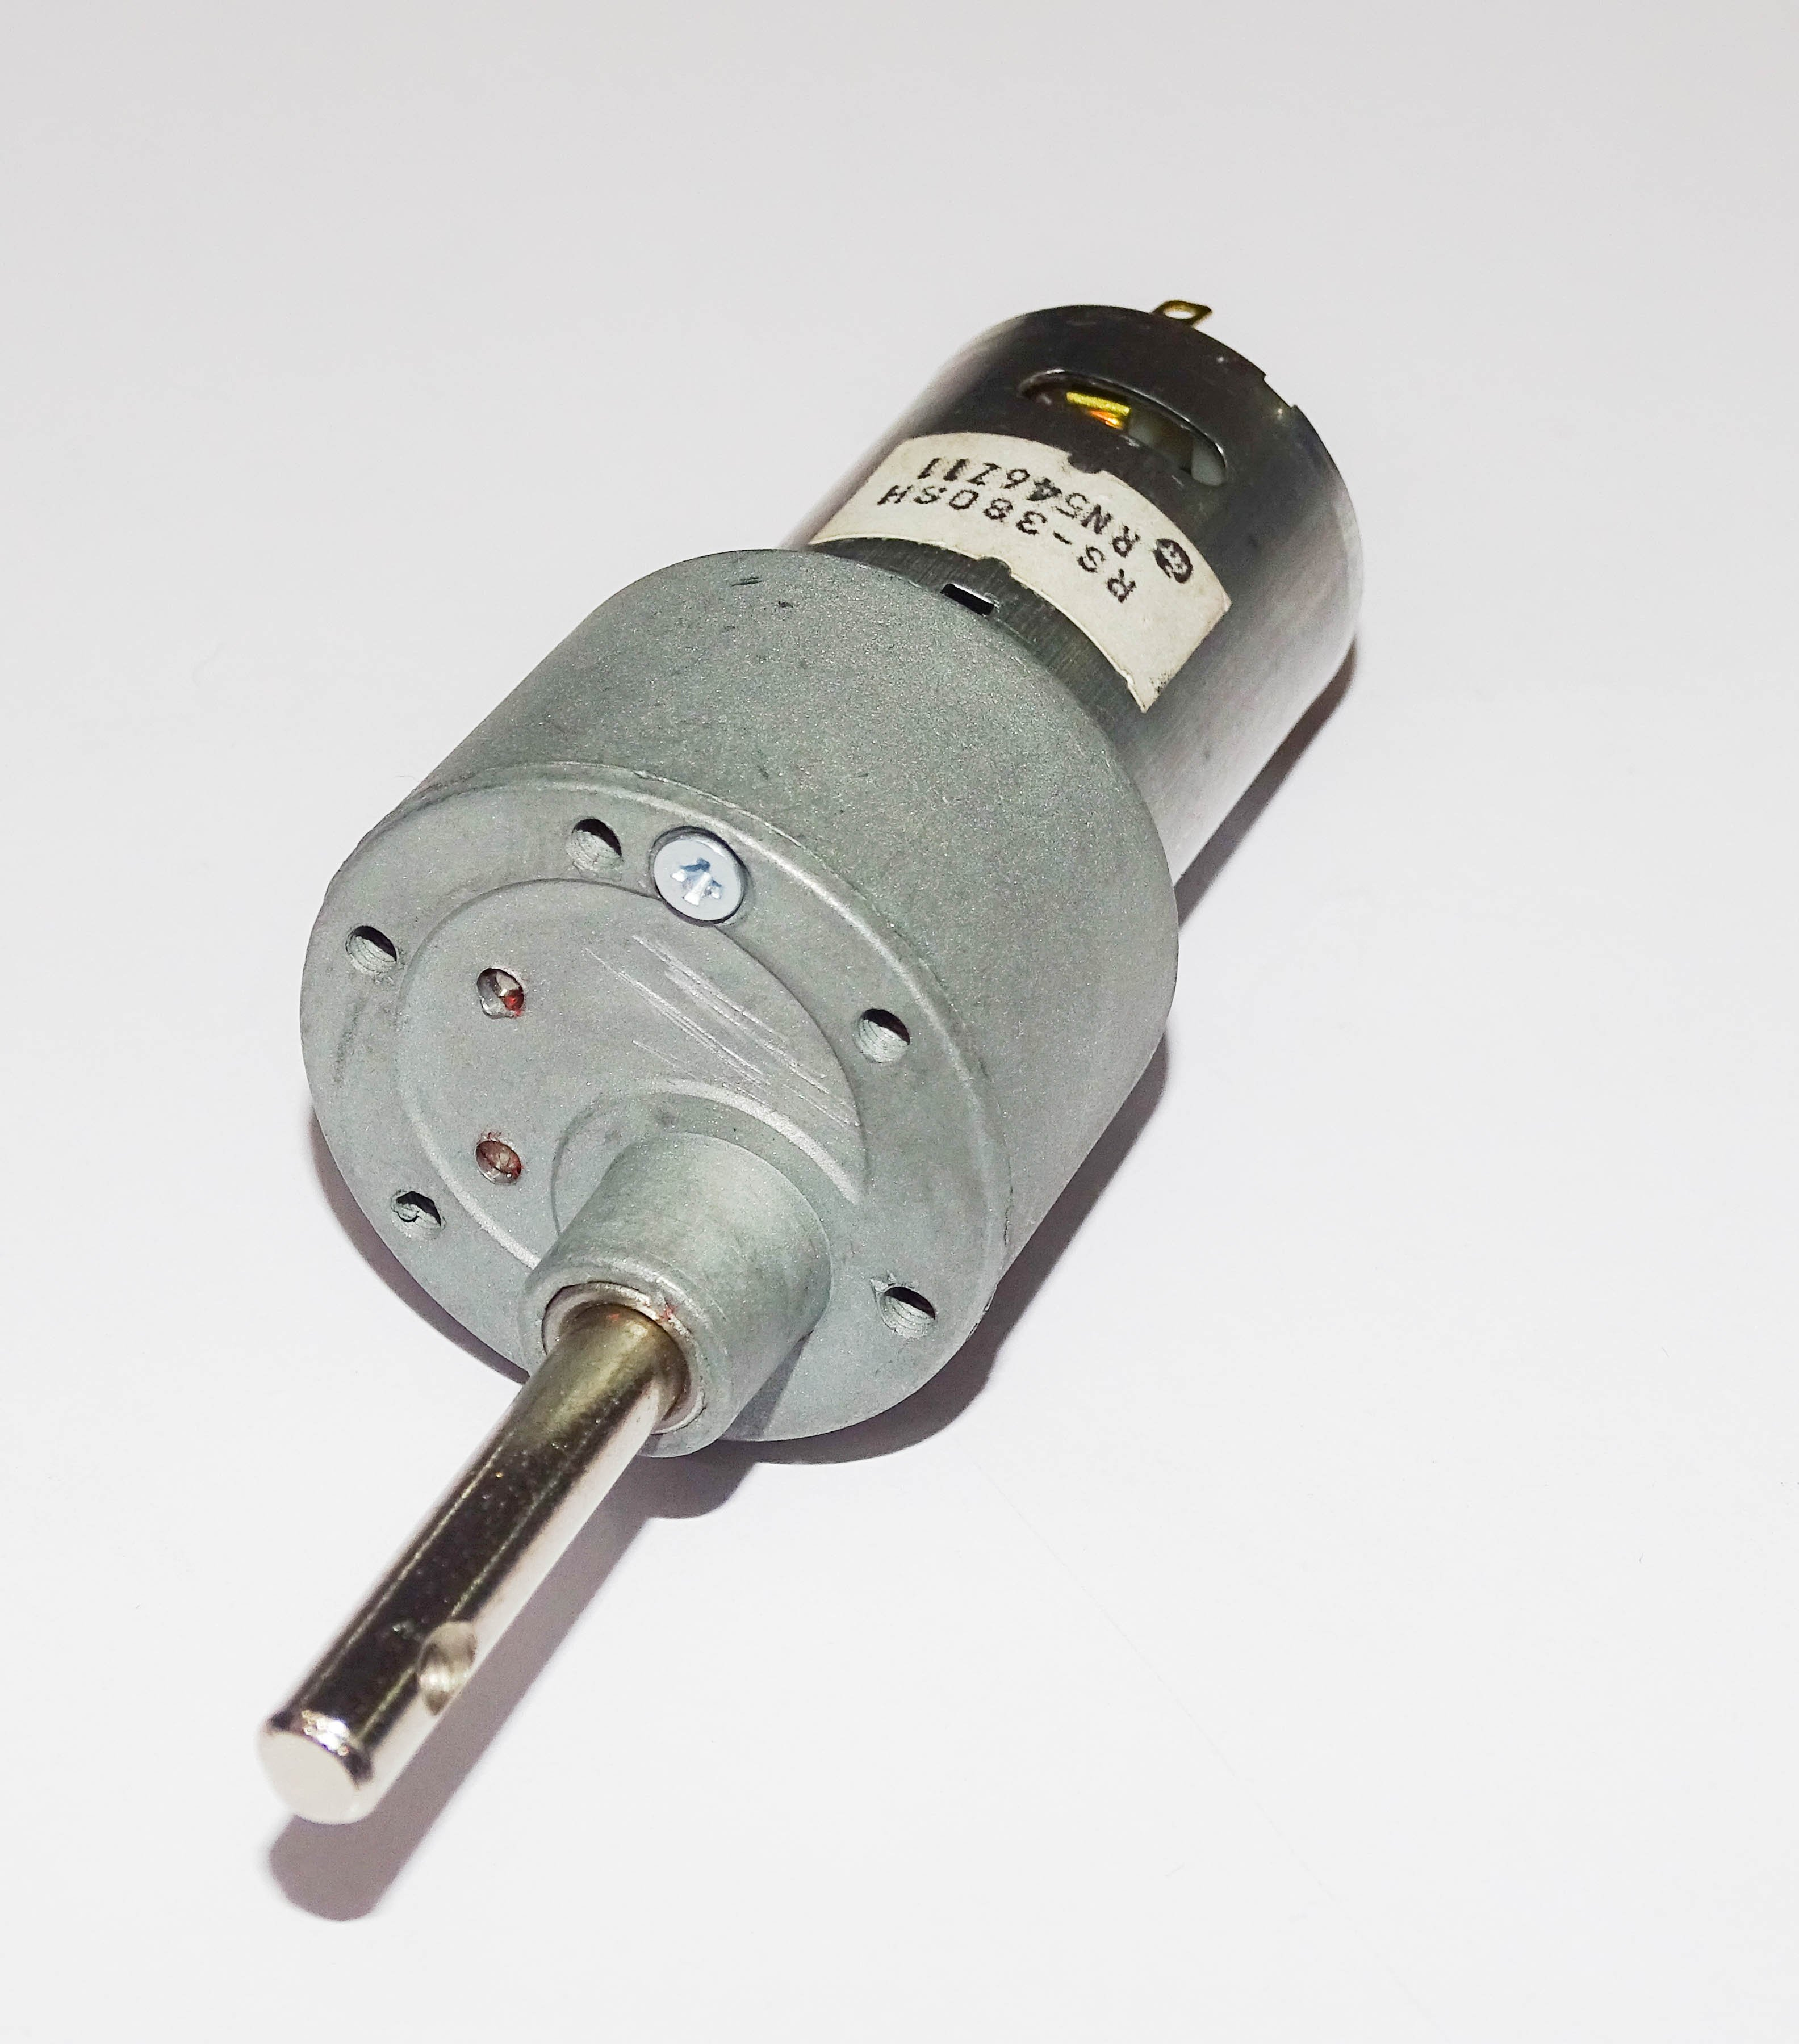 Johnson motor made in india 12 v dc 500 rpm ebay for 500 rpm electric motor